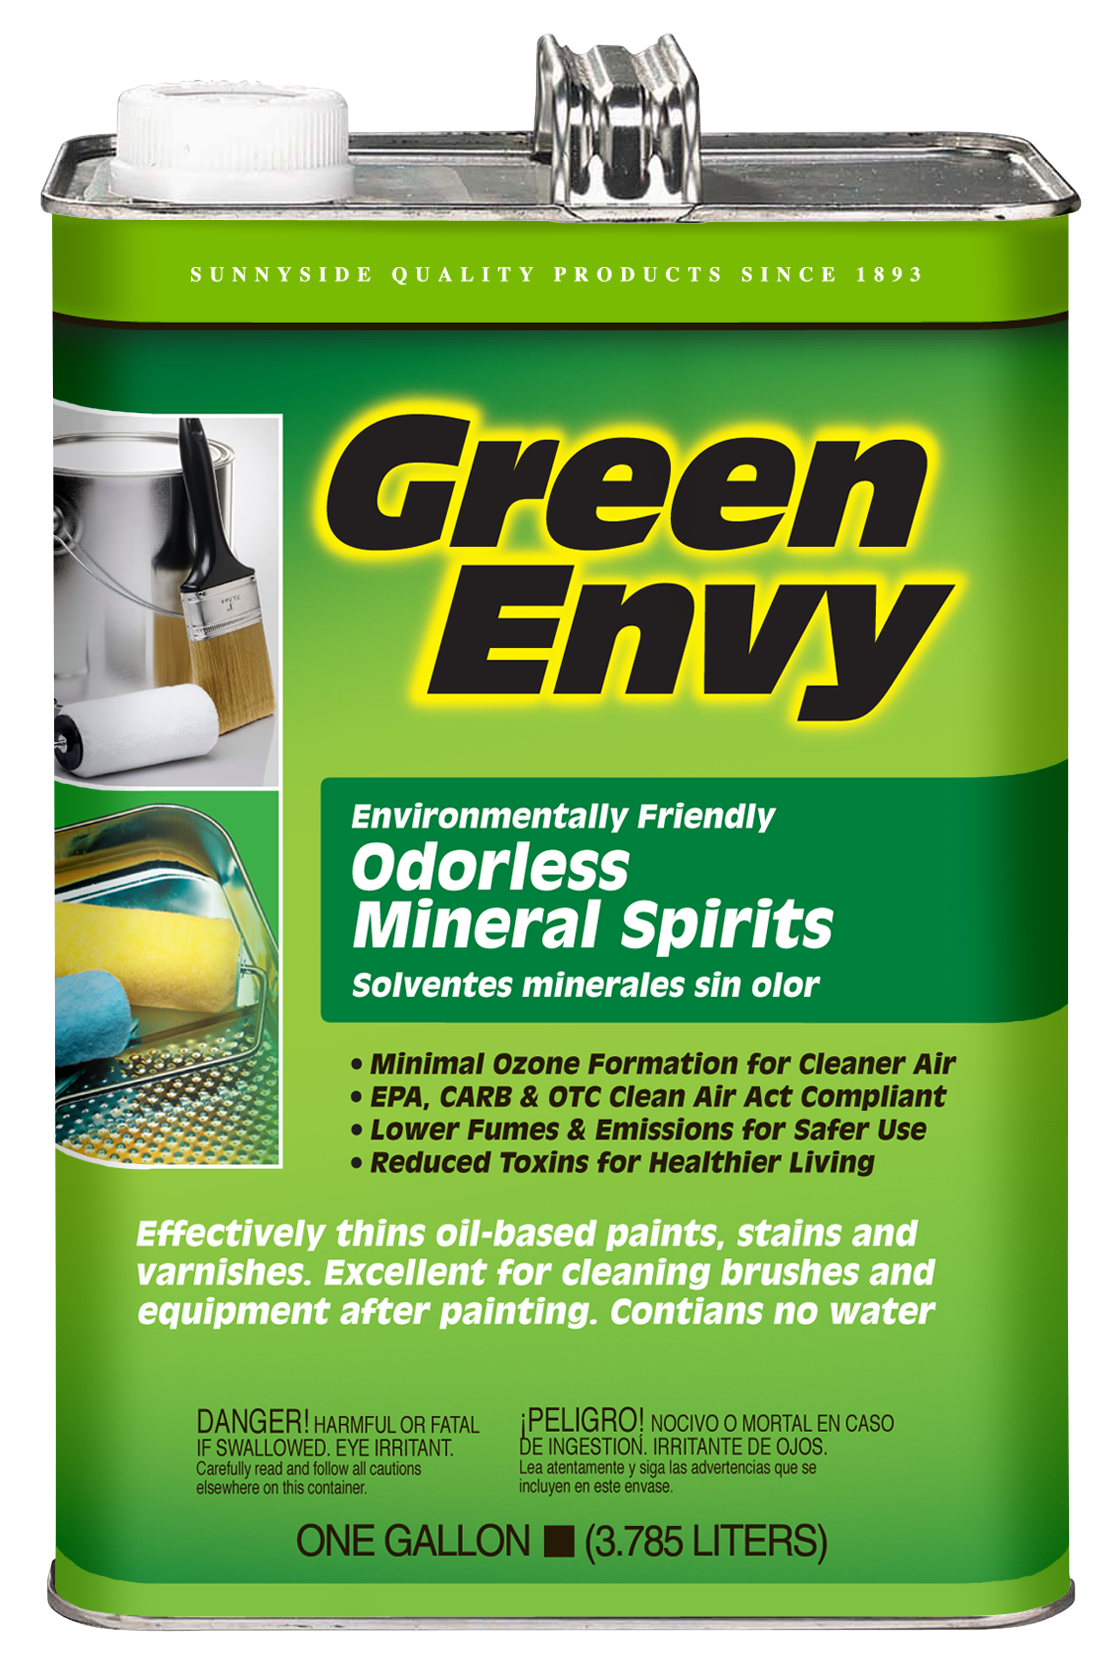 GREEN ENVY ODORLESS MINERAL SPIRITS Product Image